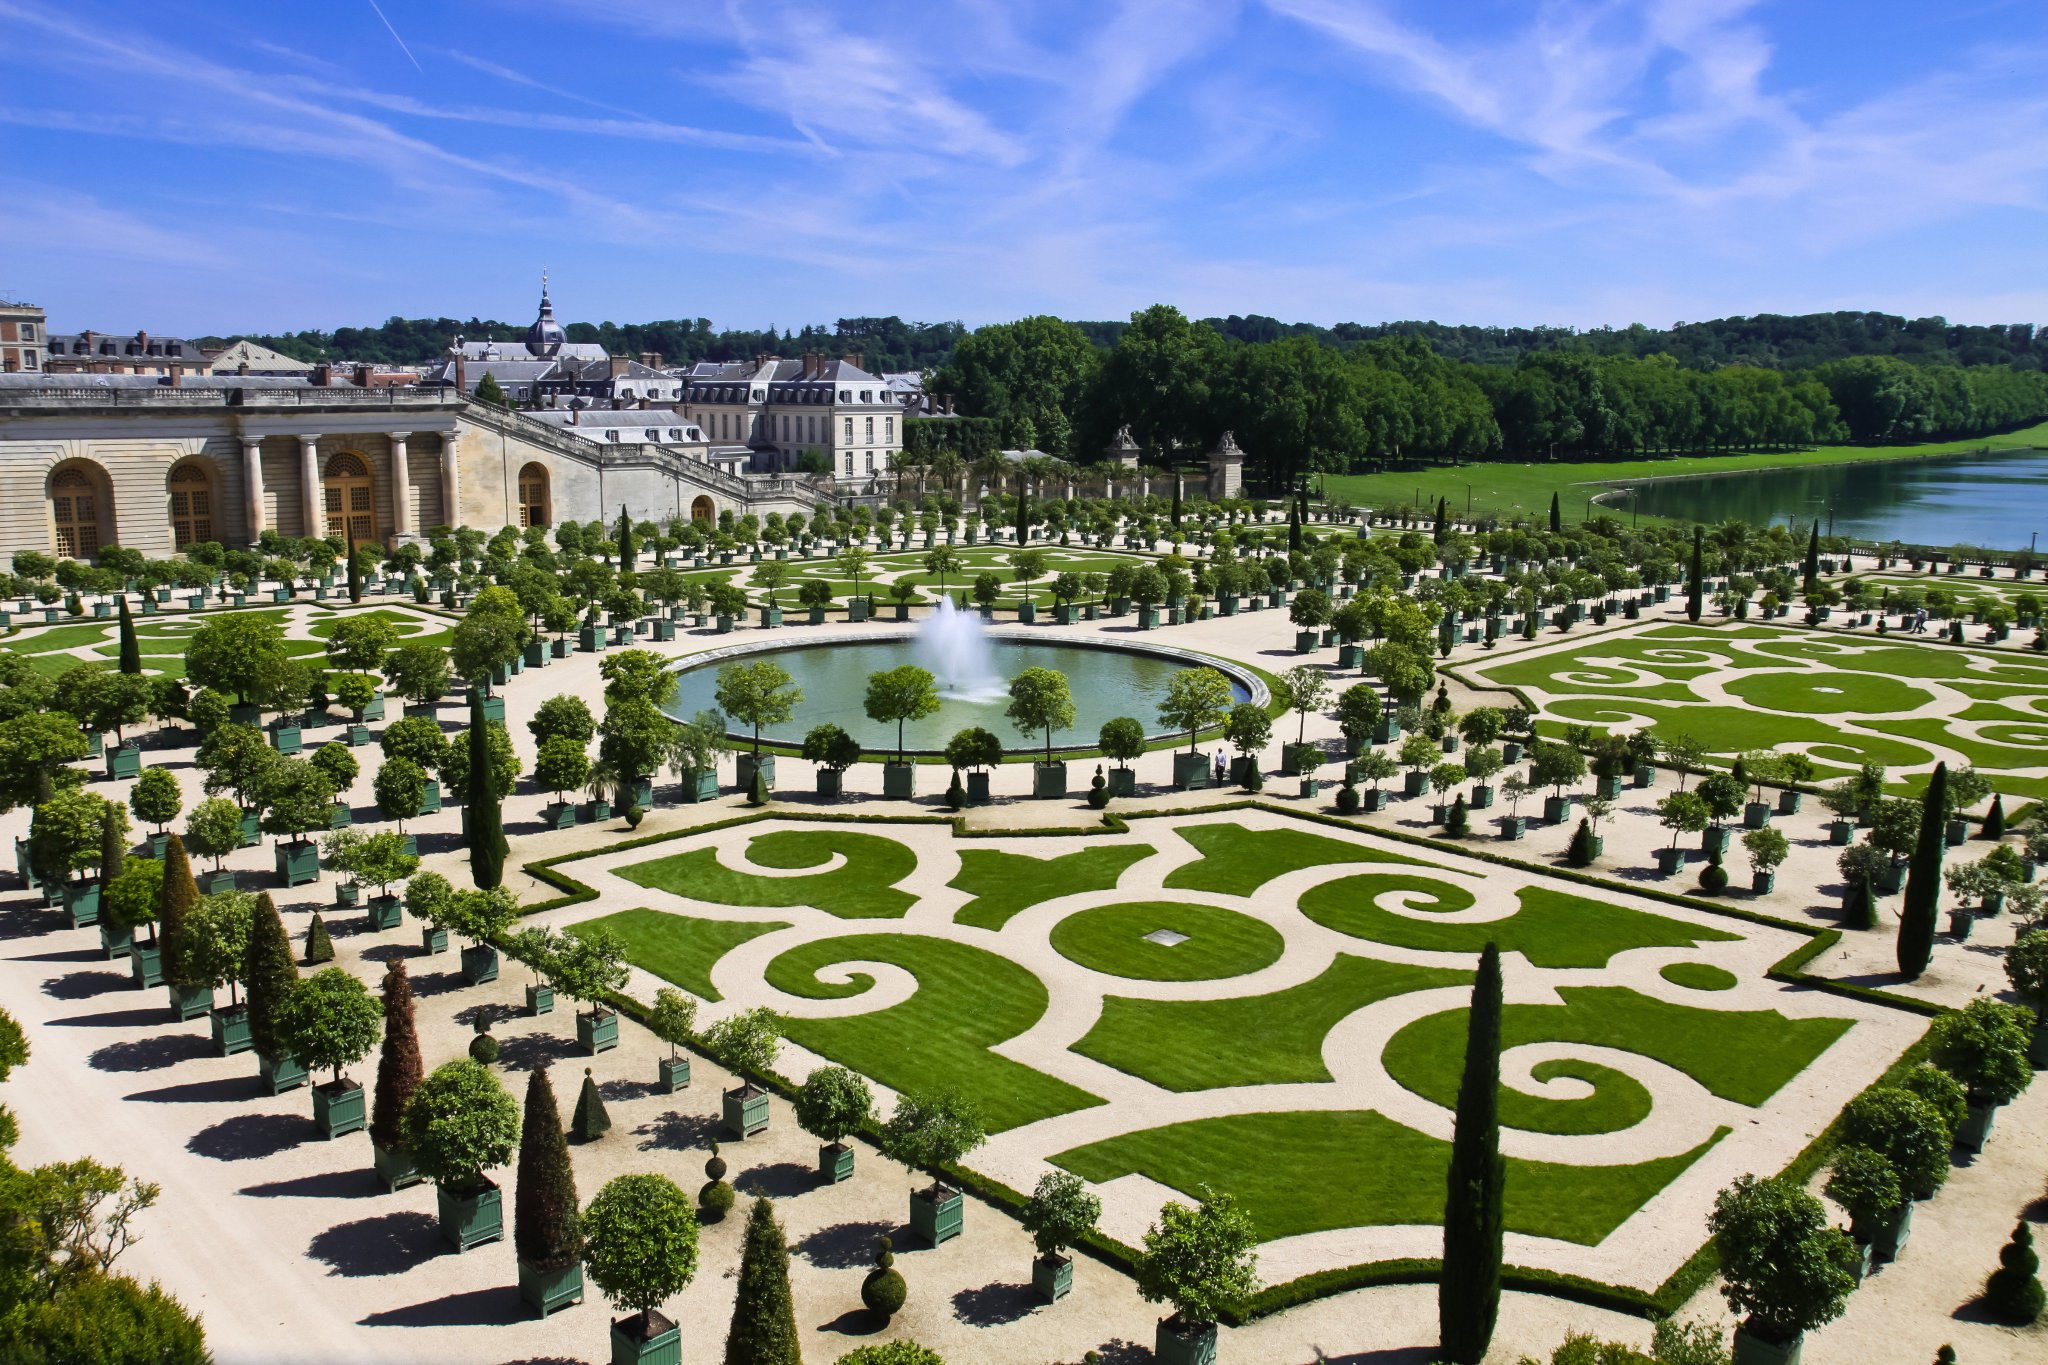 French embassy u s on twitter onthisday in 1613 andr le n tre was born he was the - Le jardin du chateau de versailles ...